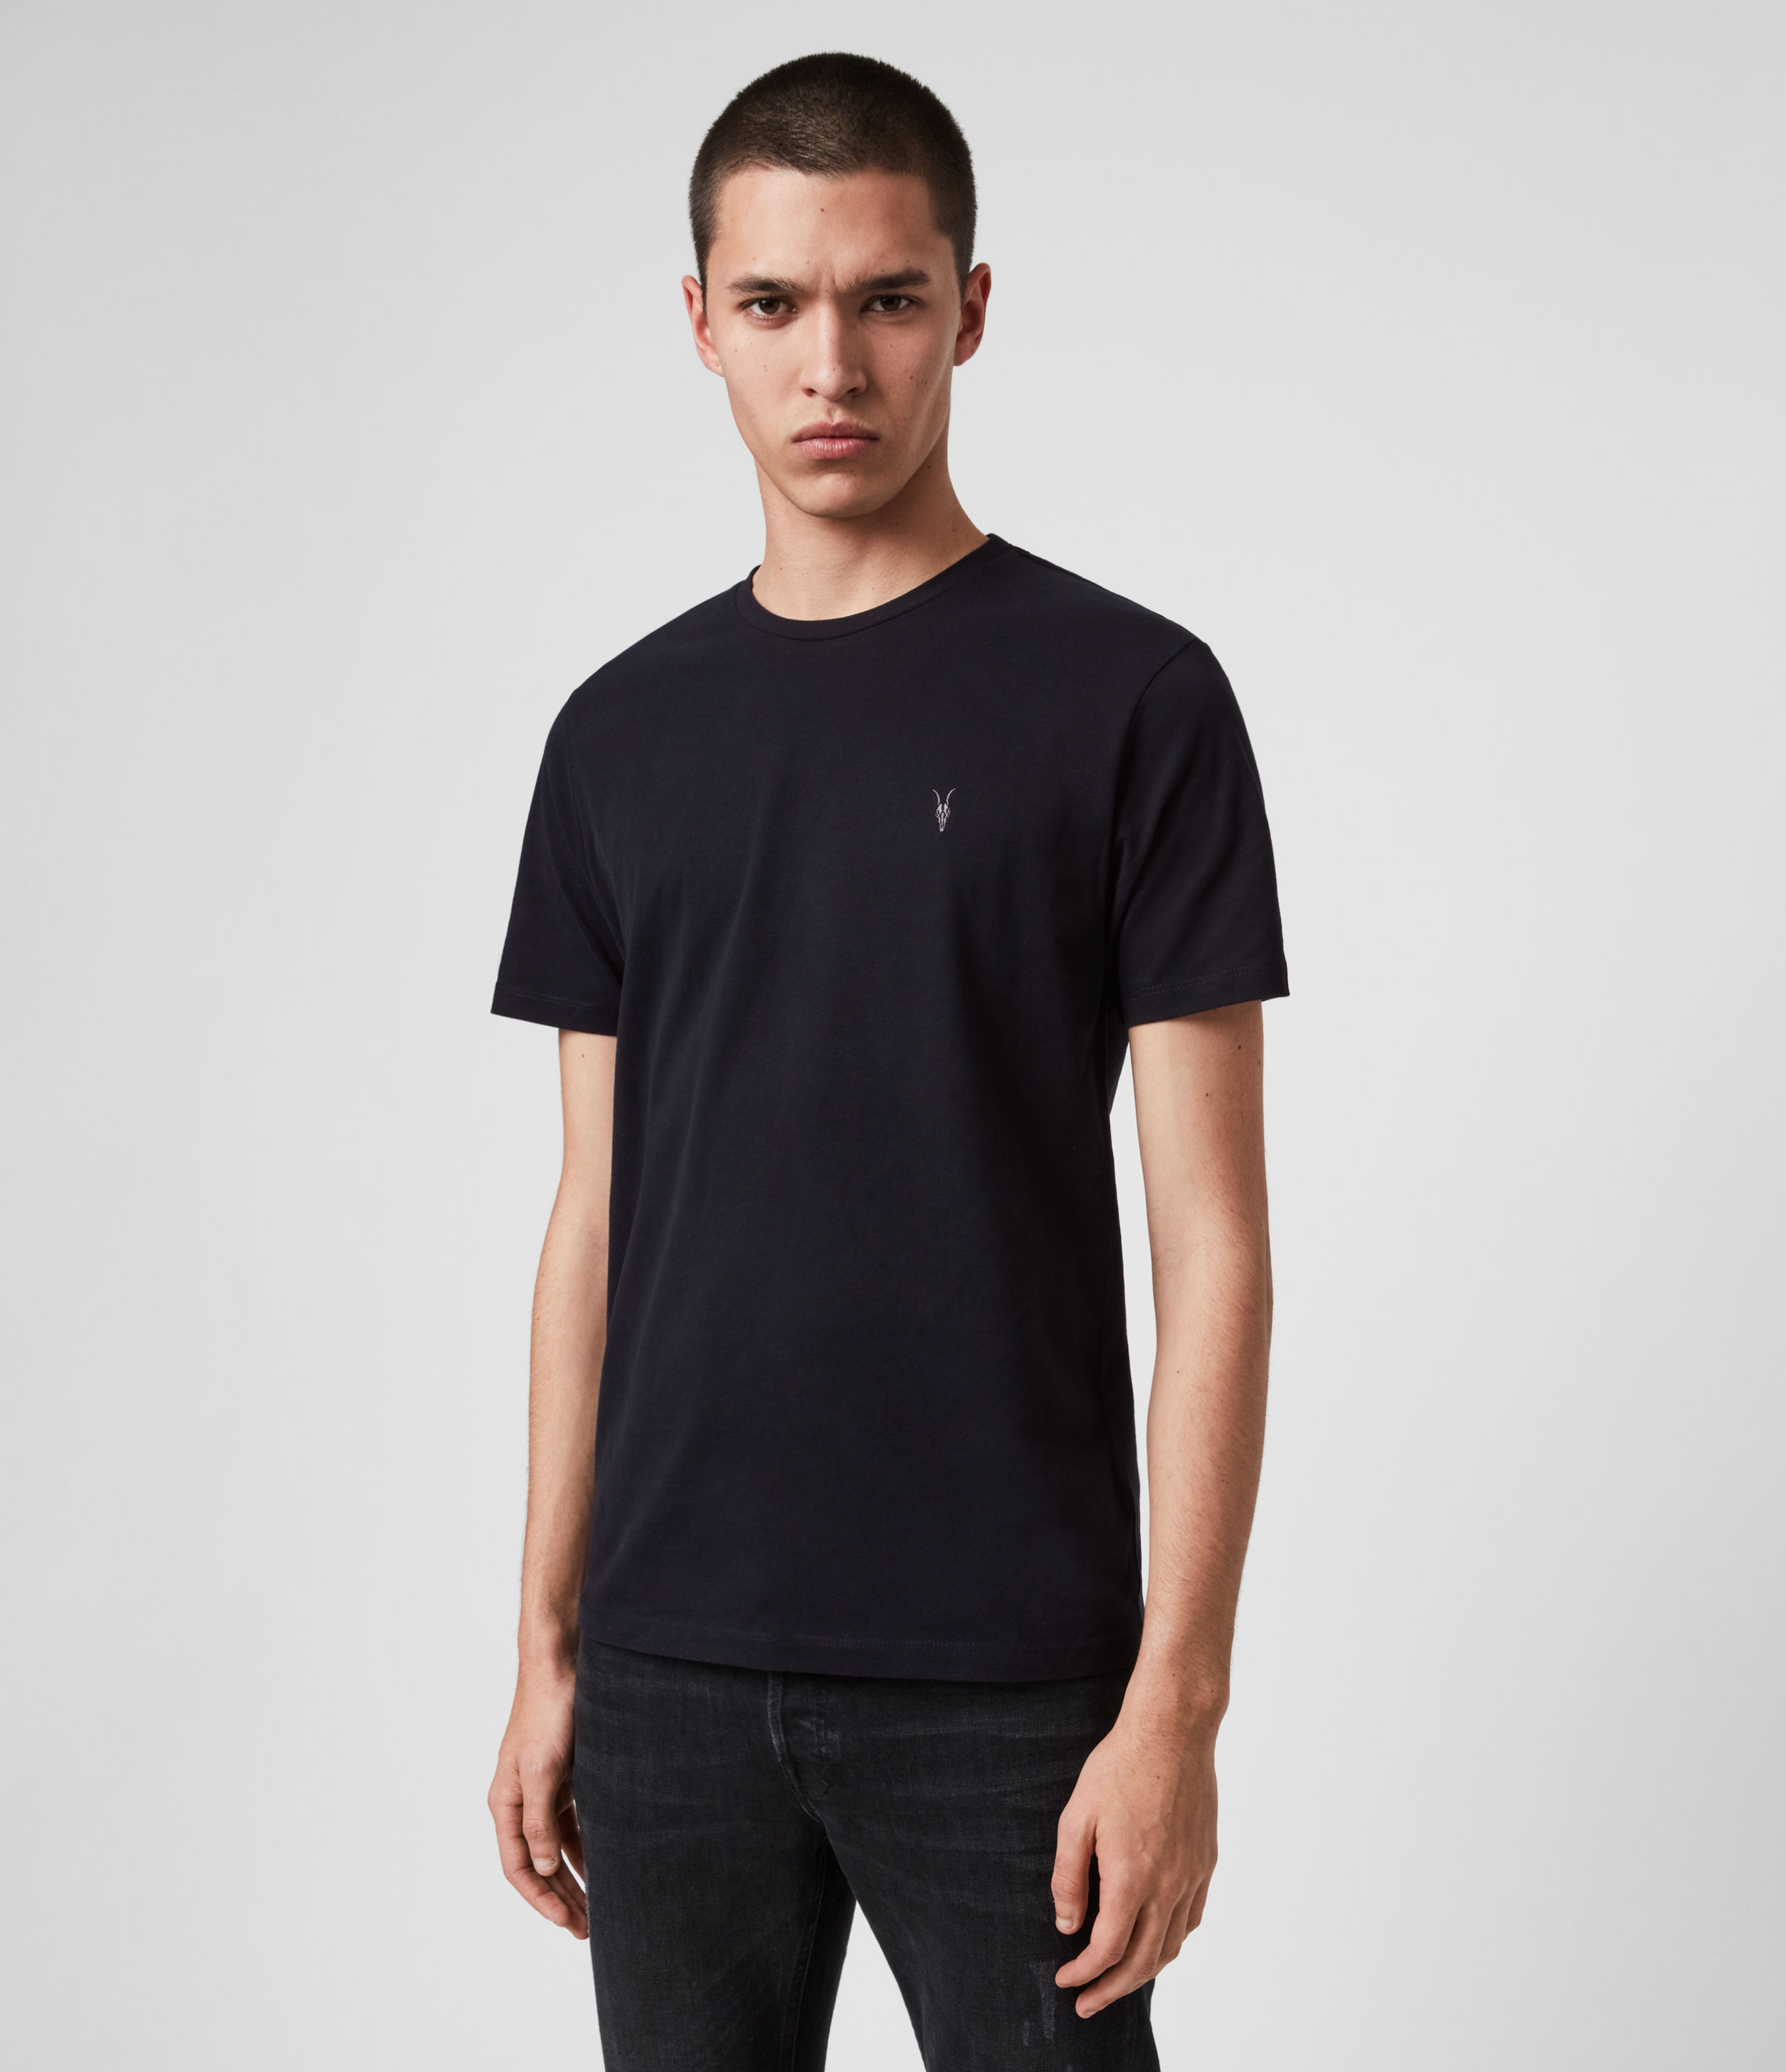 AllSaints Men's Cotton Regular Fit Brace Tonic Short Sleeve Crew T-Shirt, Blue, Size: M